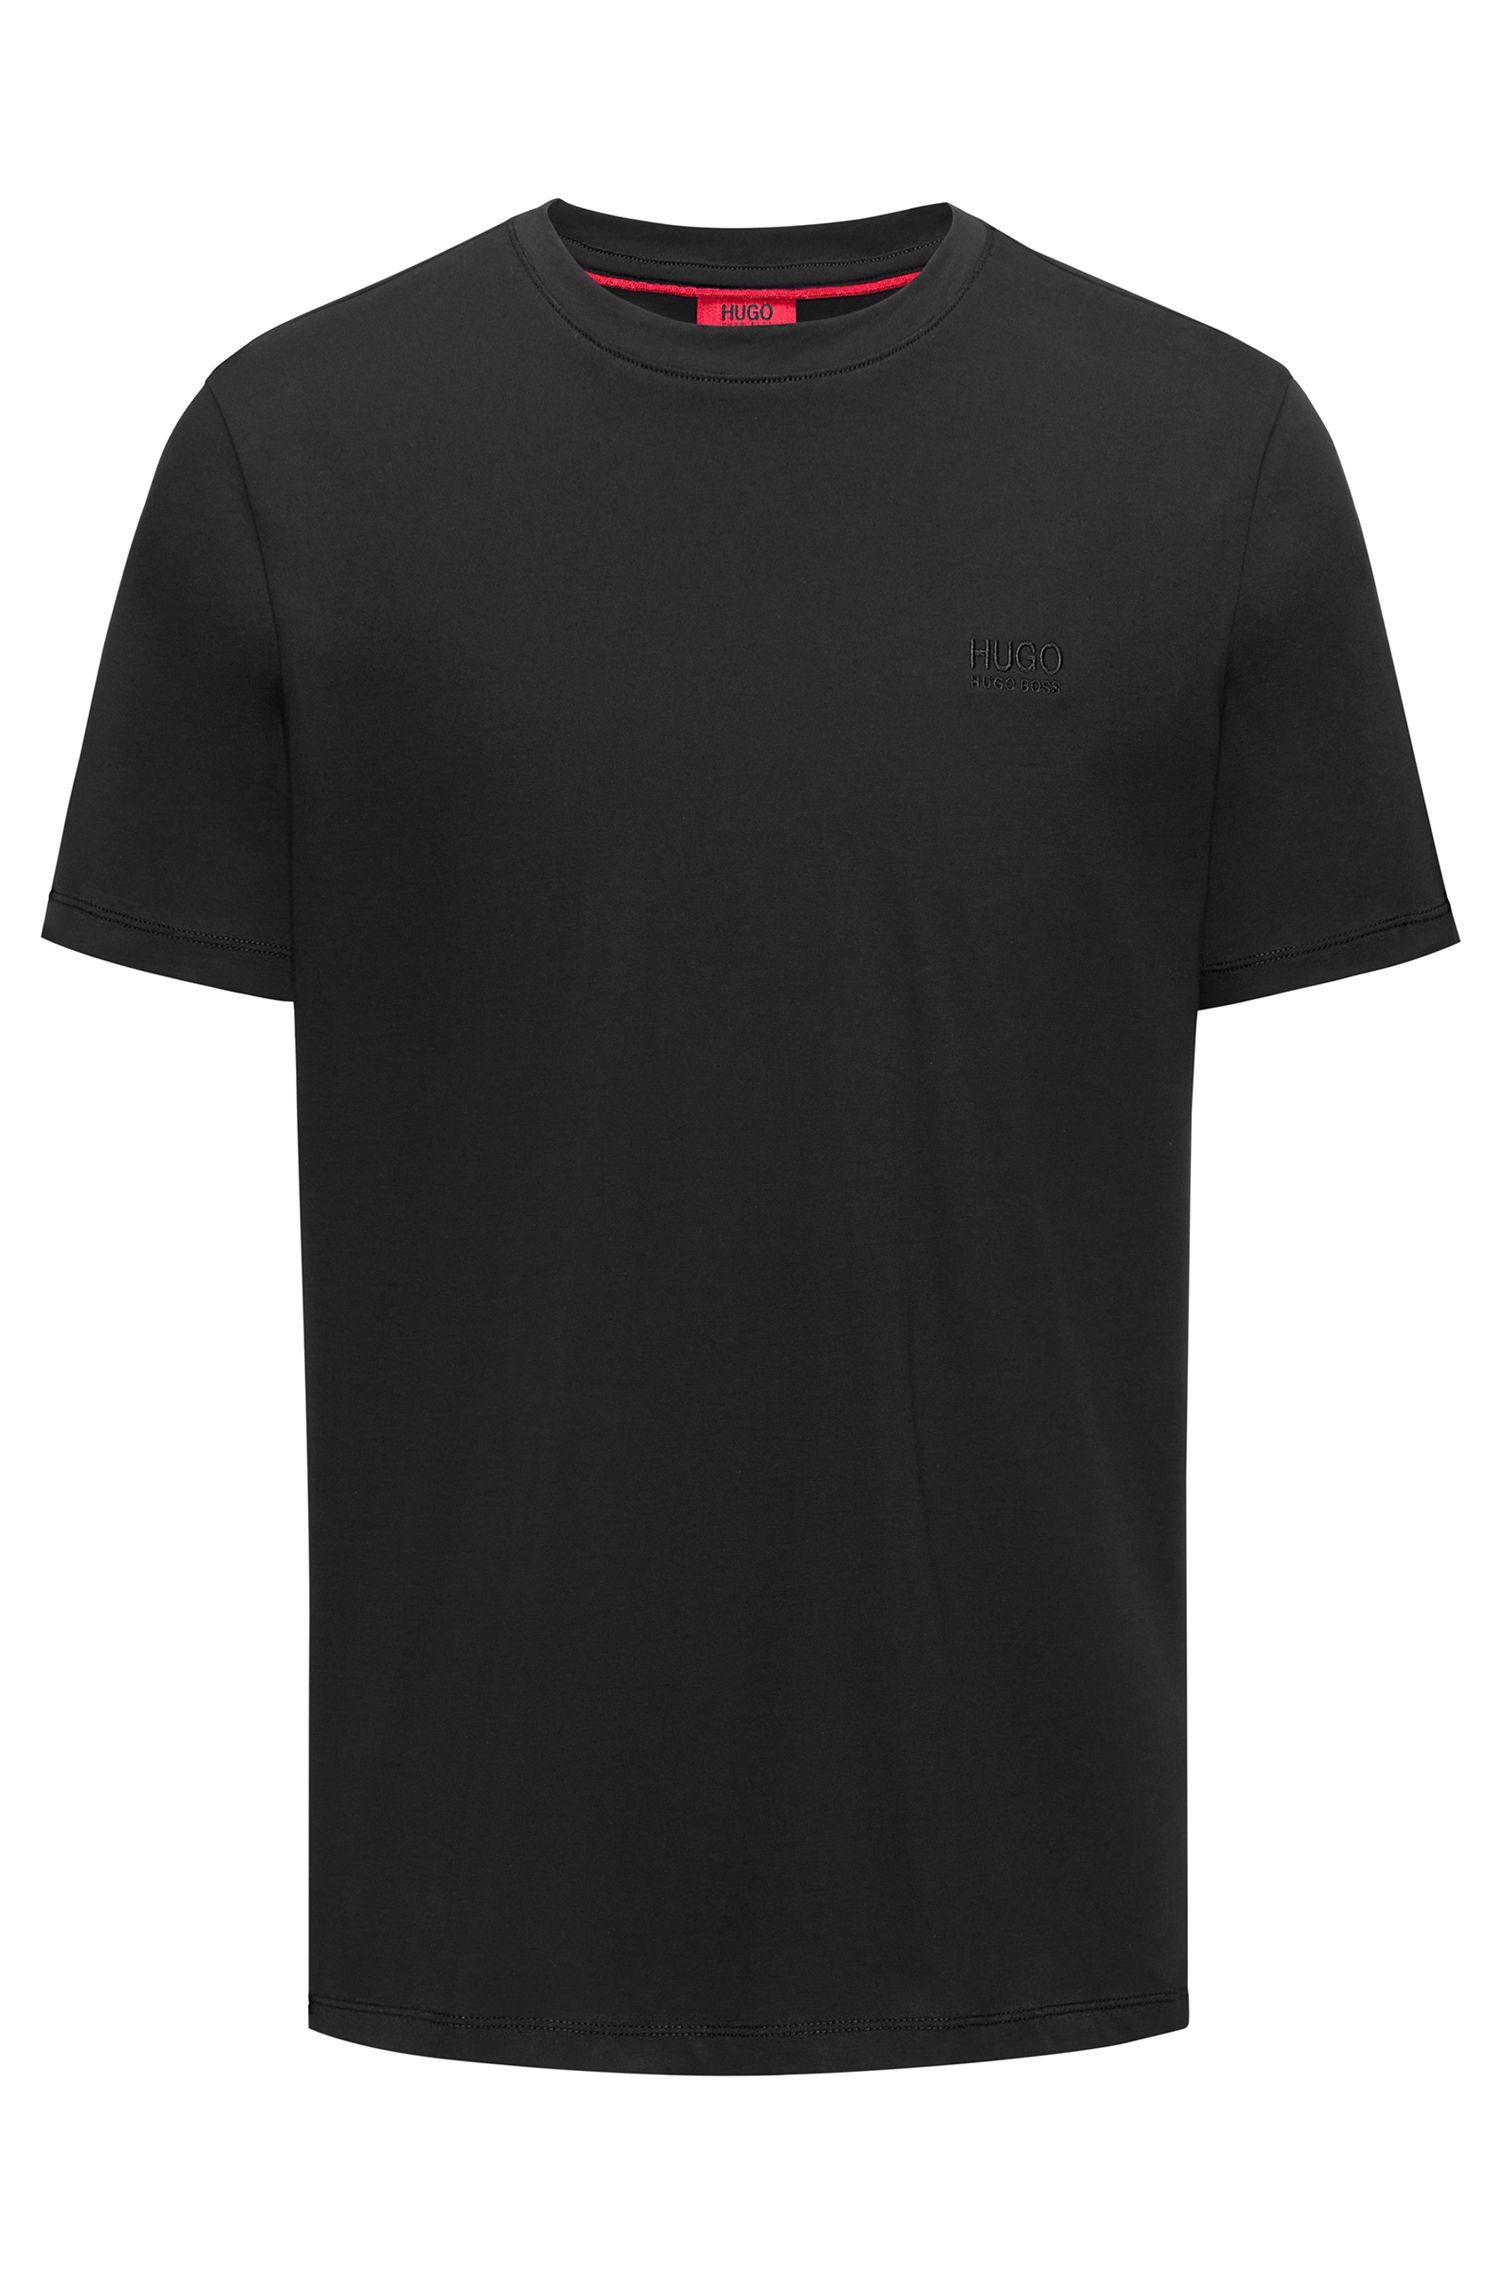 Regular-fit logo T-shirt in soft cotton, Black